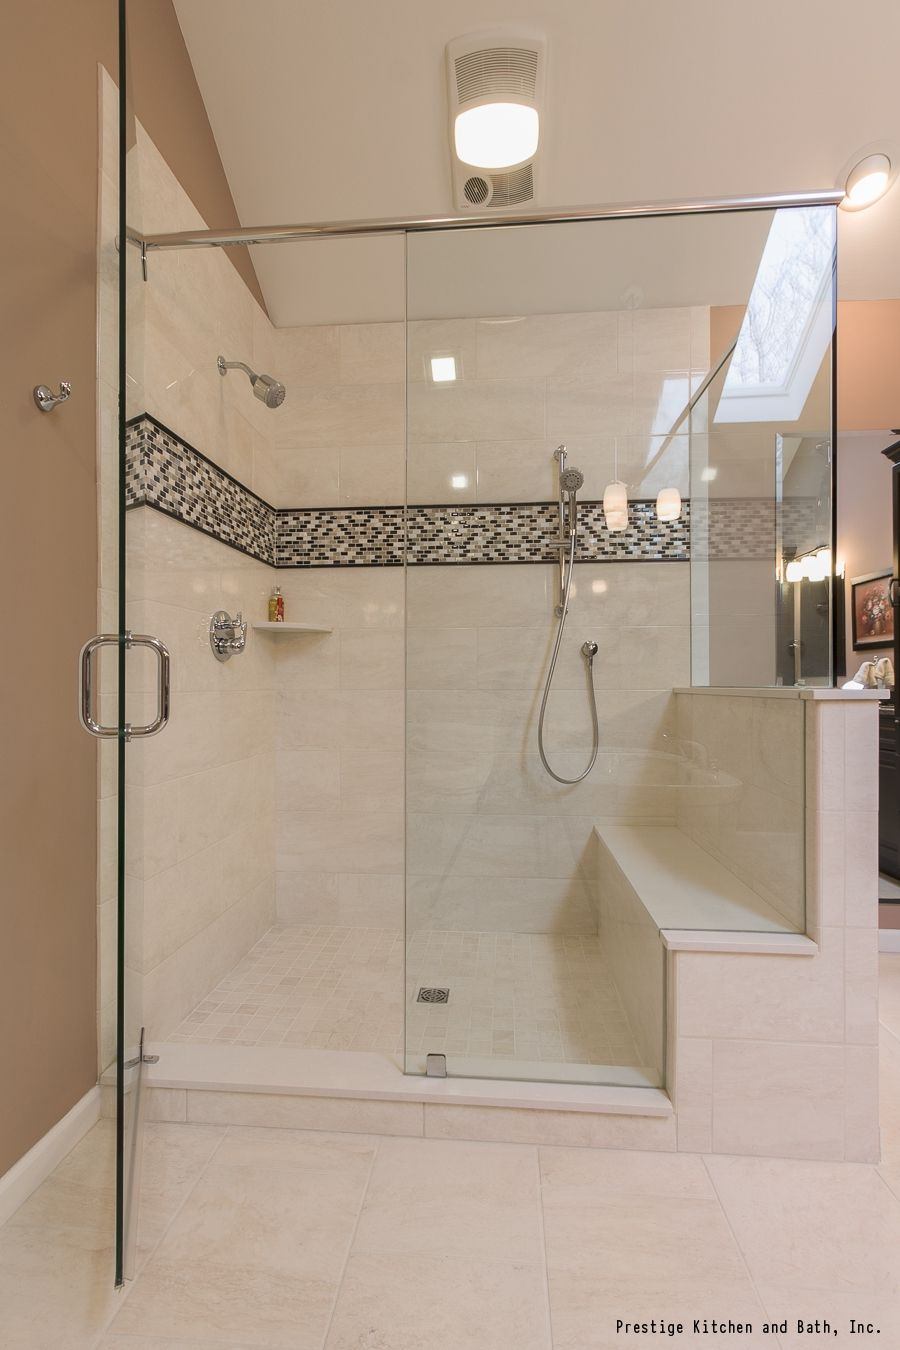 A Gorgeous Shower With Neutral Tile And A Black And White